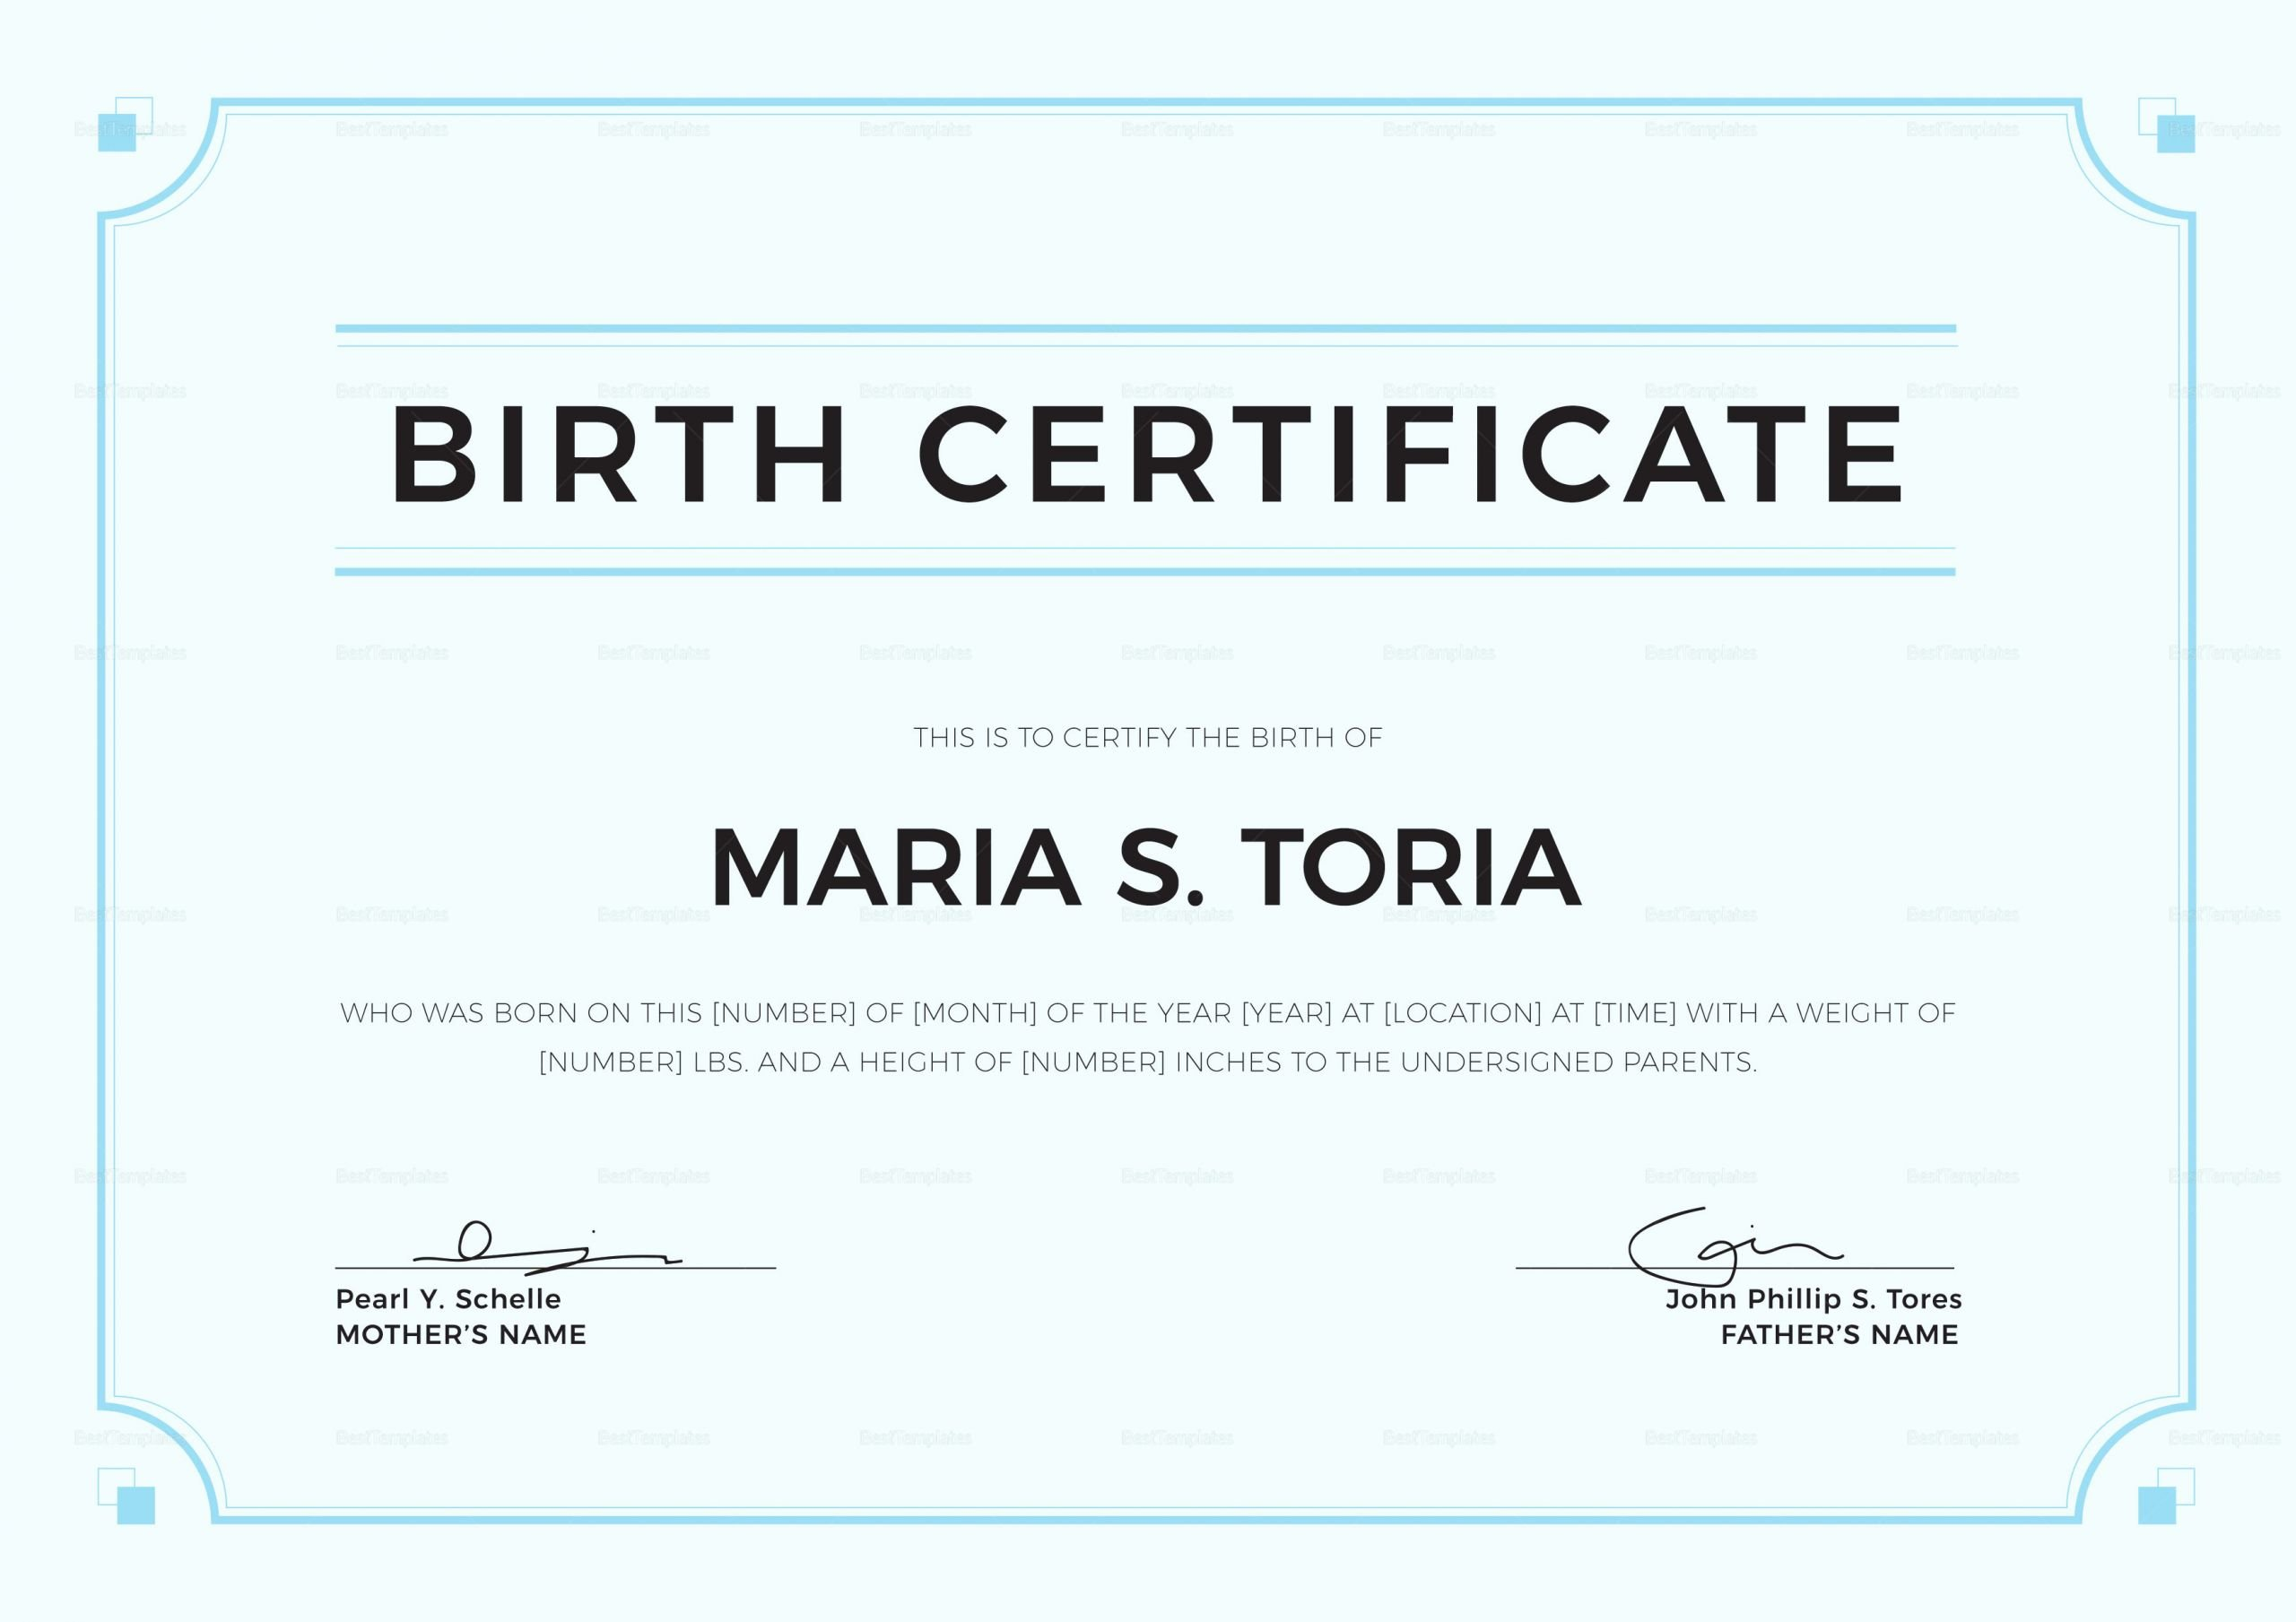 Official Blank Birth Certificate Template Elegant Blank Birth Certificate Design Template In Psd Word